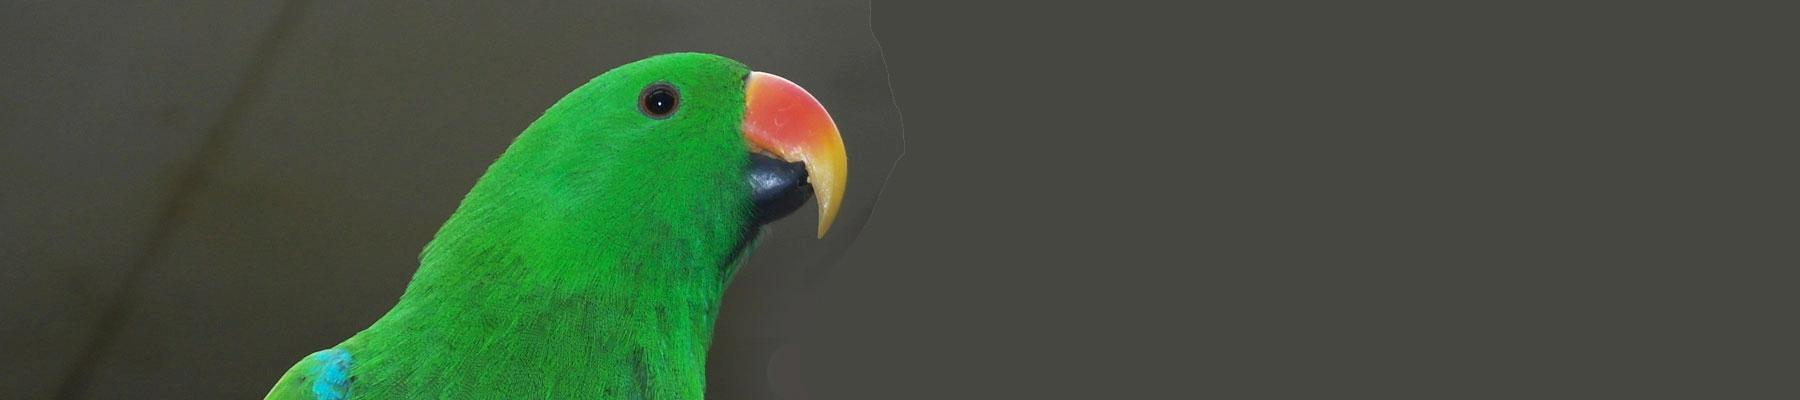 Male Eclectus Parrot. Image by RitaE from Pixabay